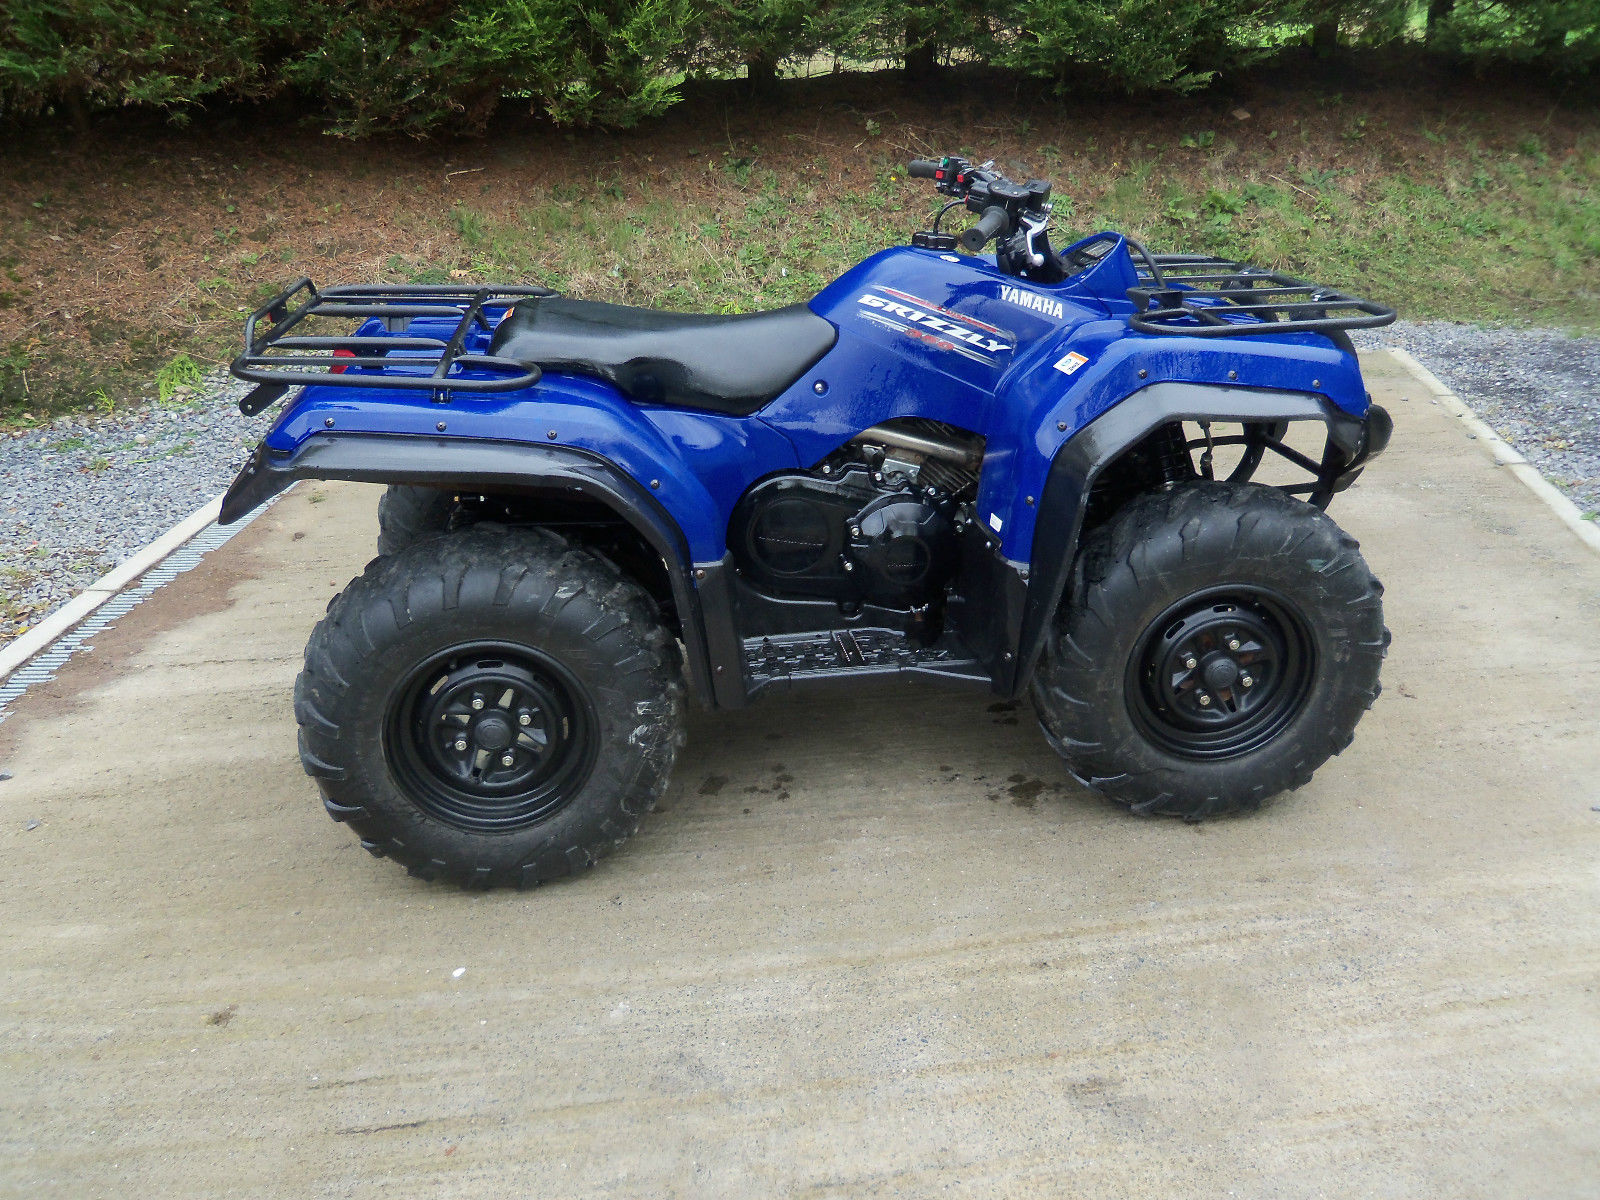 yamaha grizzly 350cc 4 x 4 quad bike. Black Bedroom Furniture Sets. Home Design Ideas